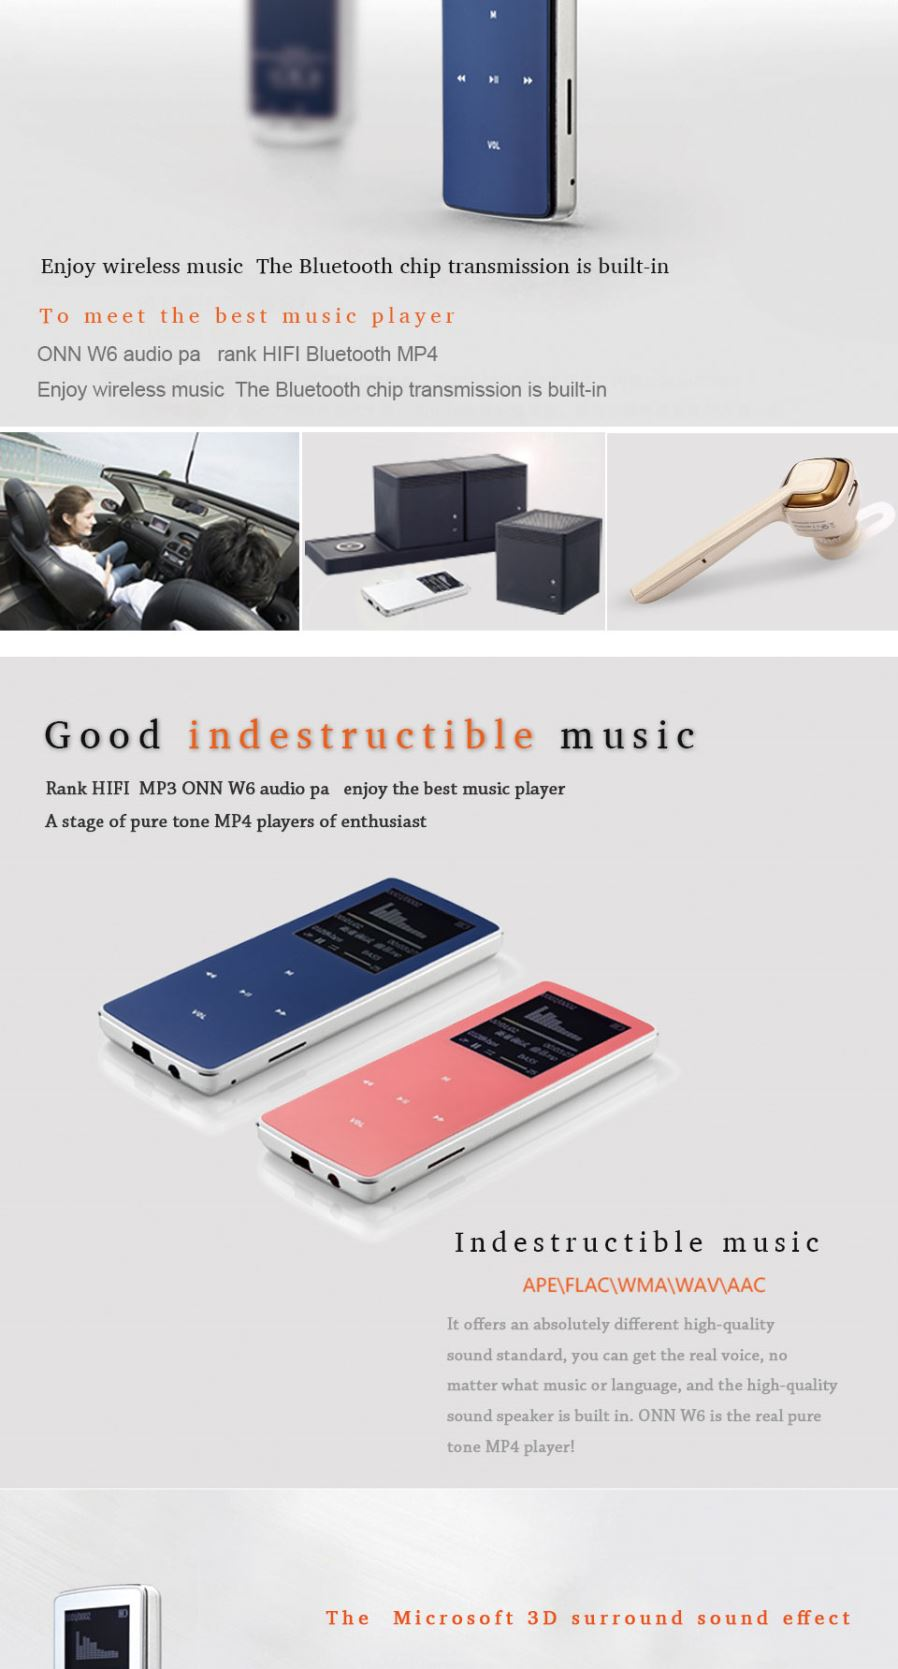 Onn w6 ultra slim 18 tft screen sporting mp3 player w fm try watching this video on youtube or enable javascript if it is disabled in your browser fandeluxe Gallery